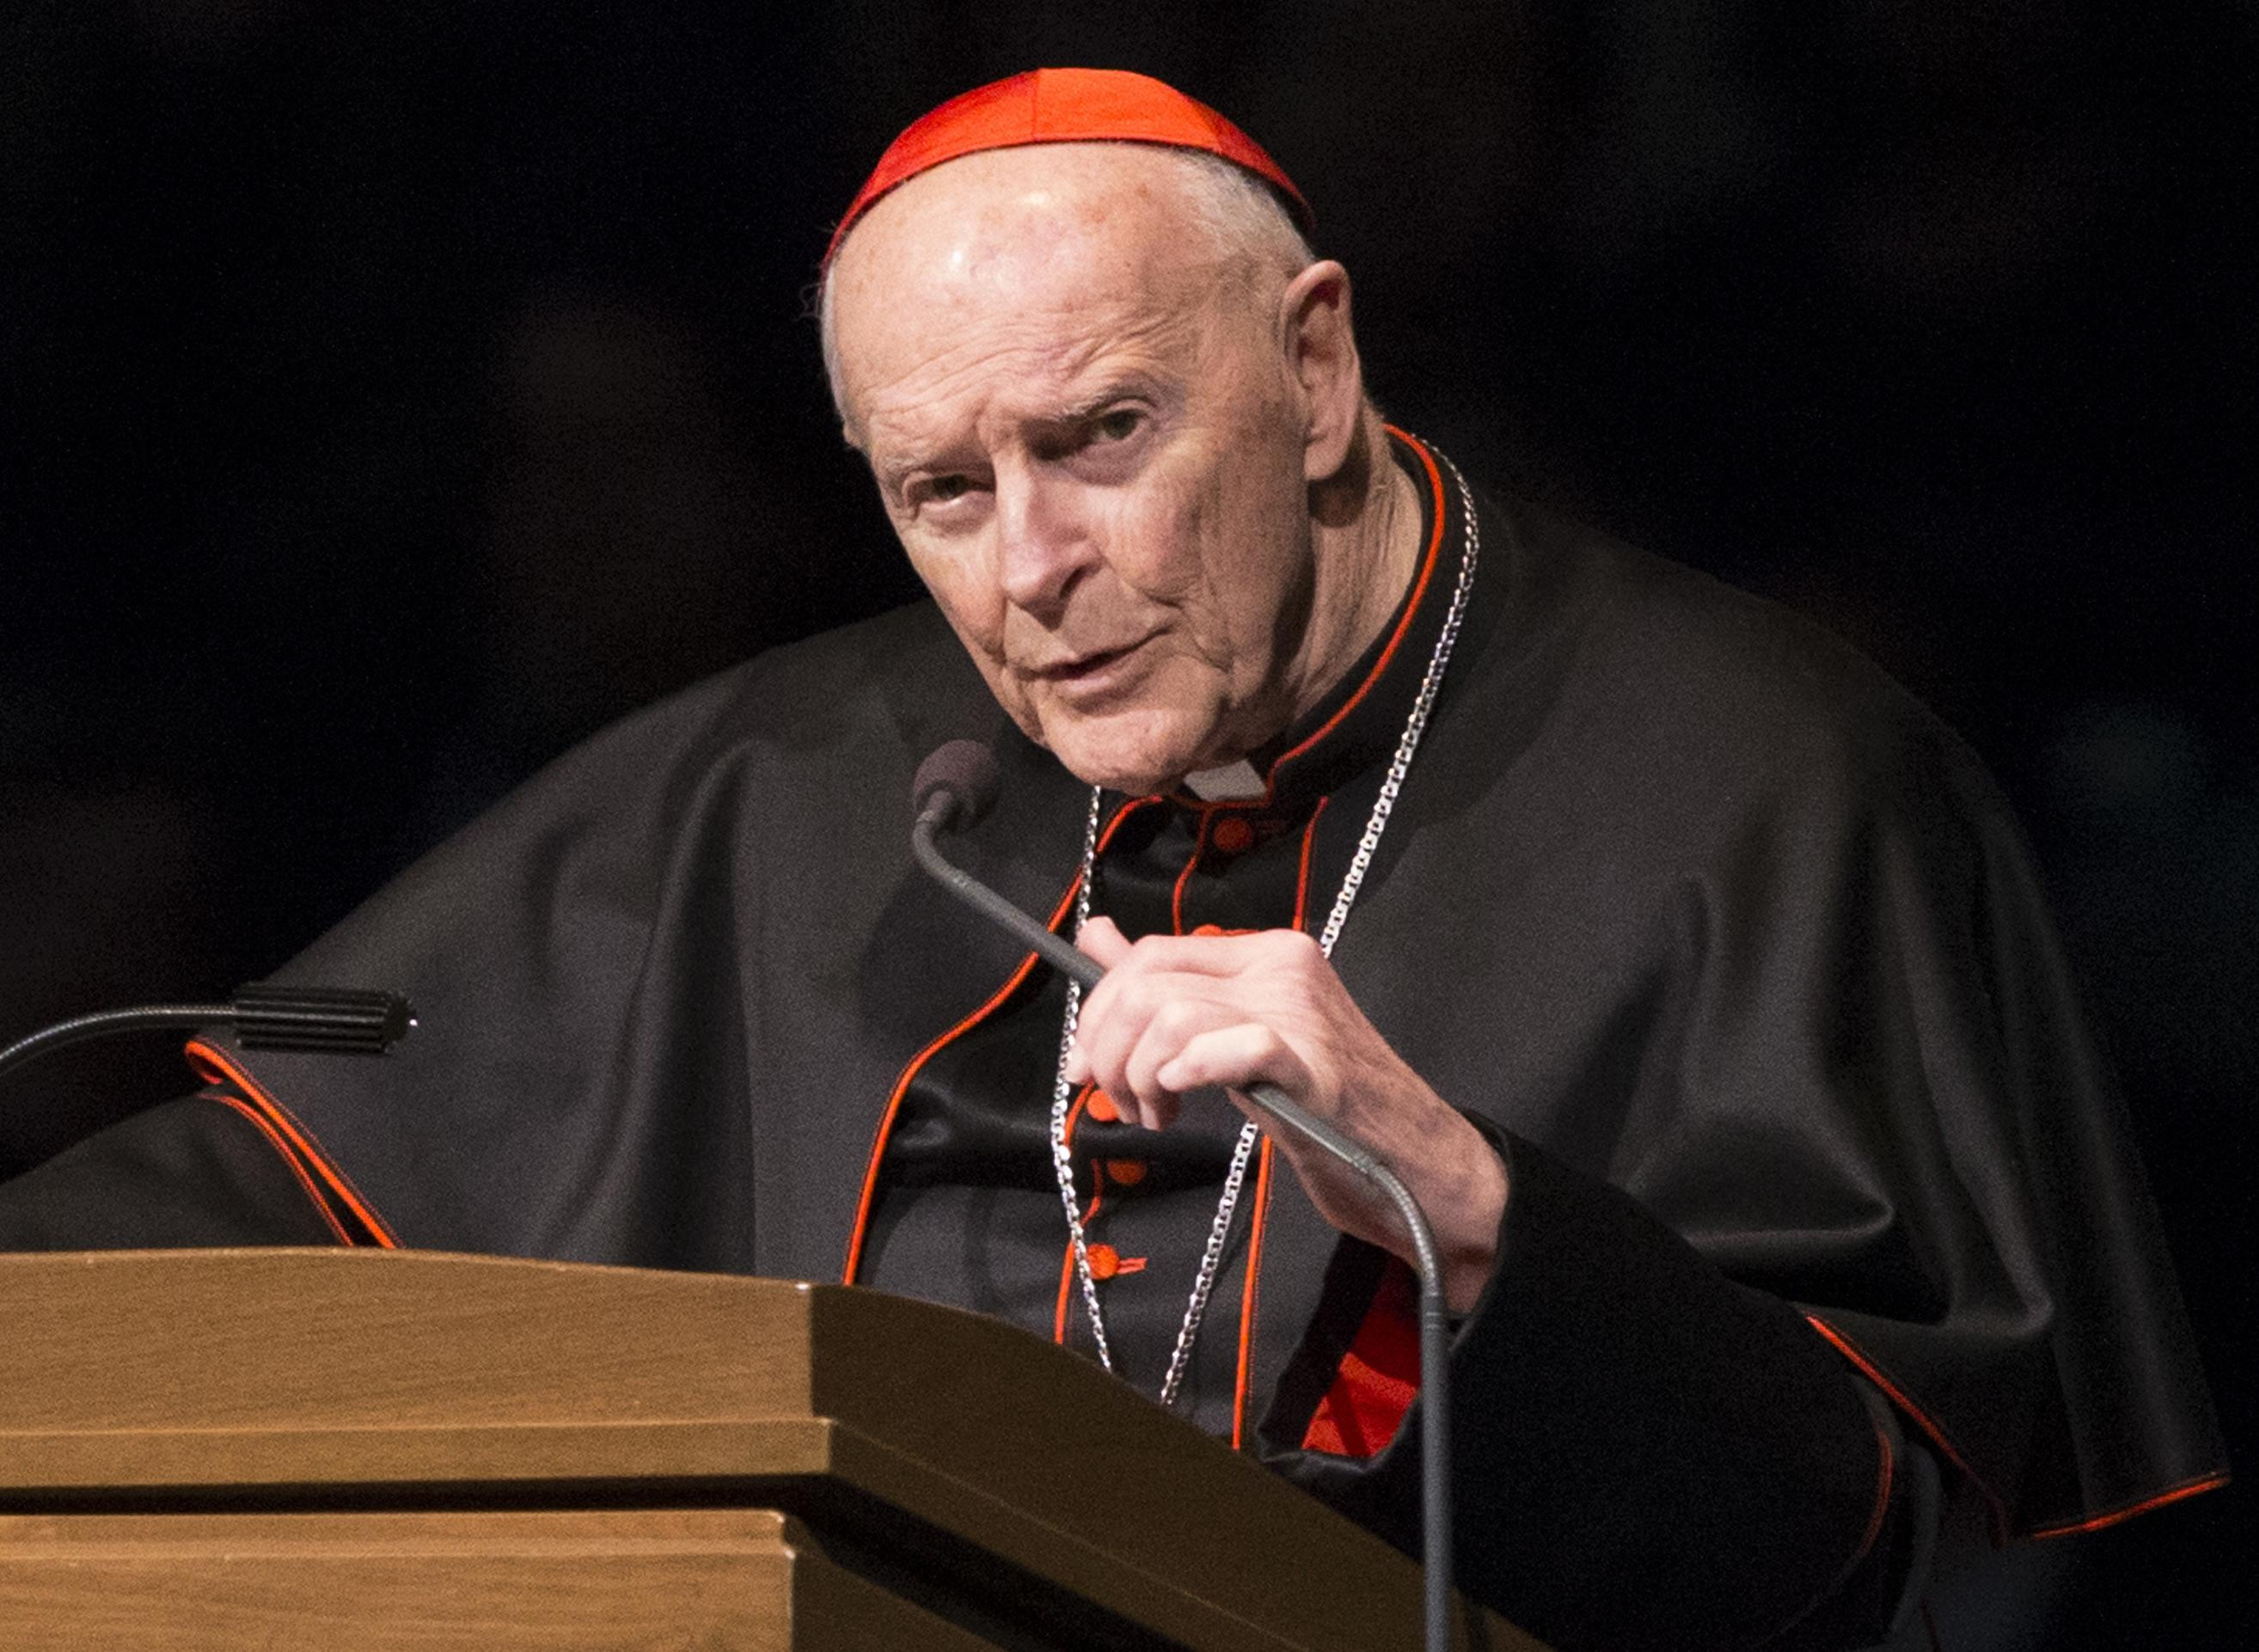 Ex-Cardinal Theodore McCarrick's letters to victims show signs of